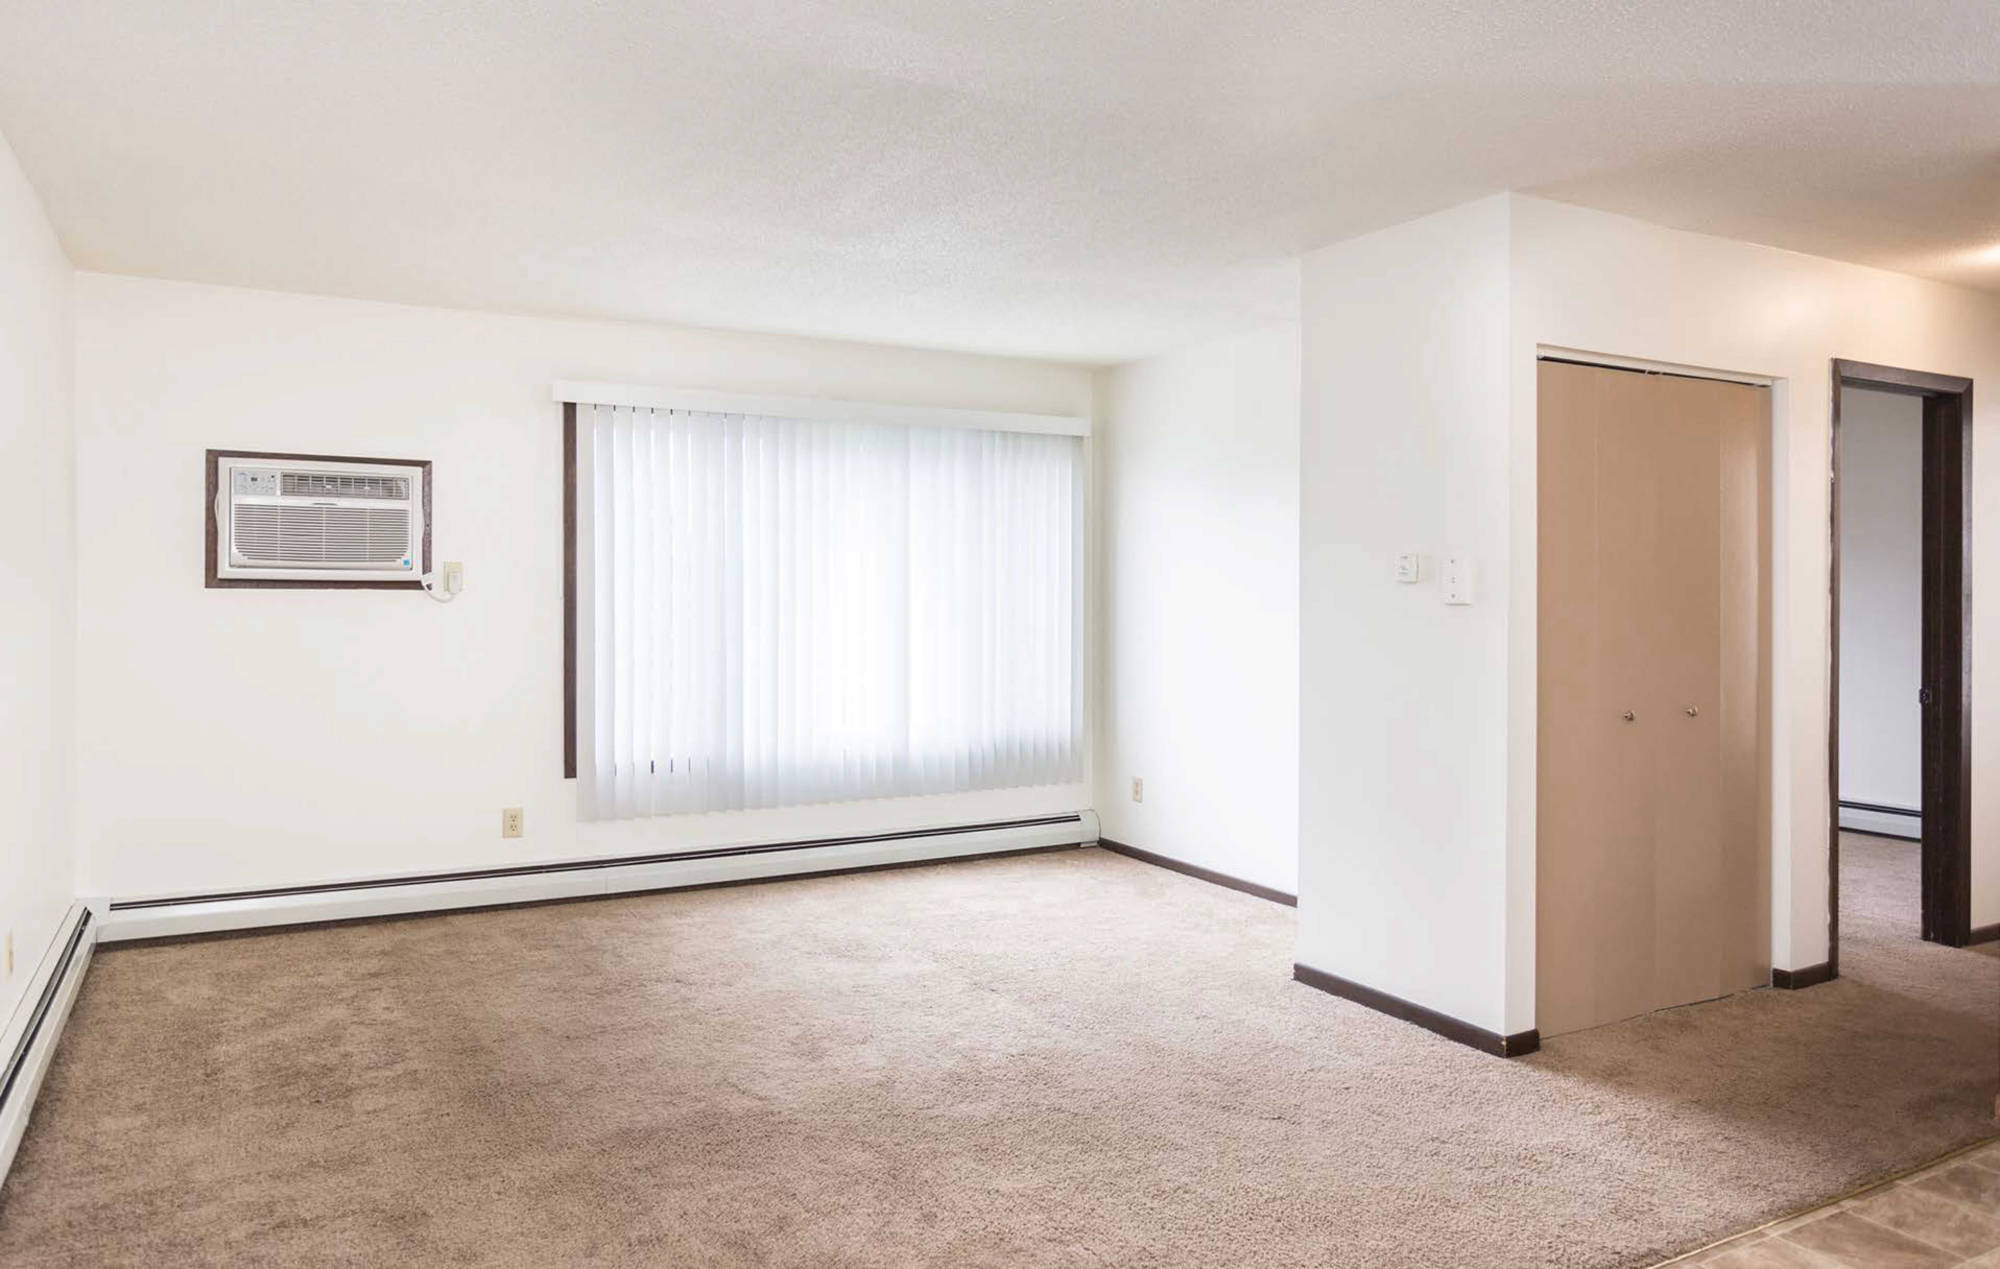 Living room with air conditioner, window with stylish shades, closet and carpeting. Fairview Apartments St. Peter, MN